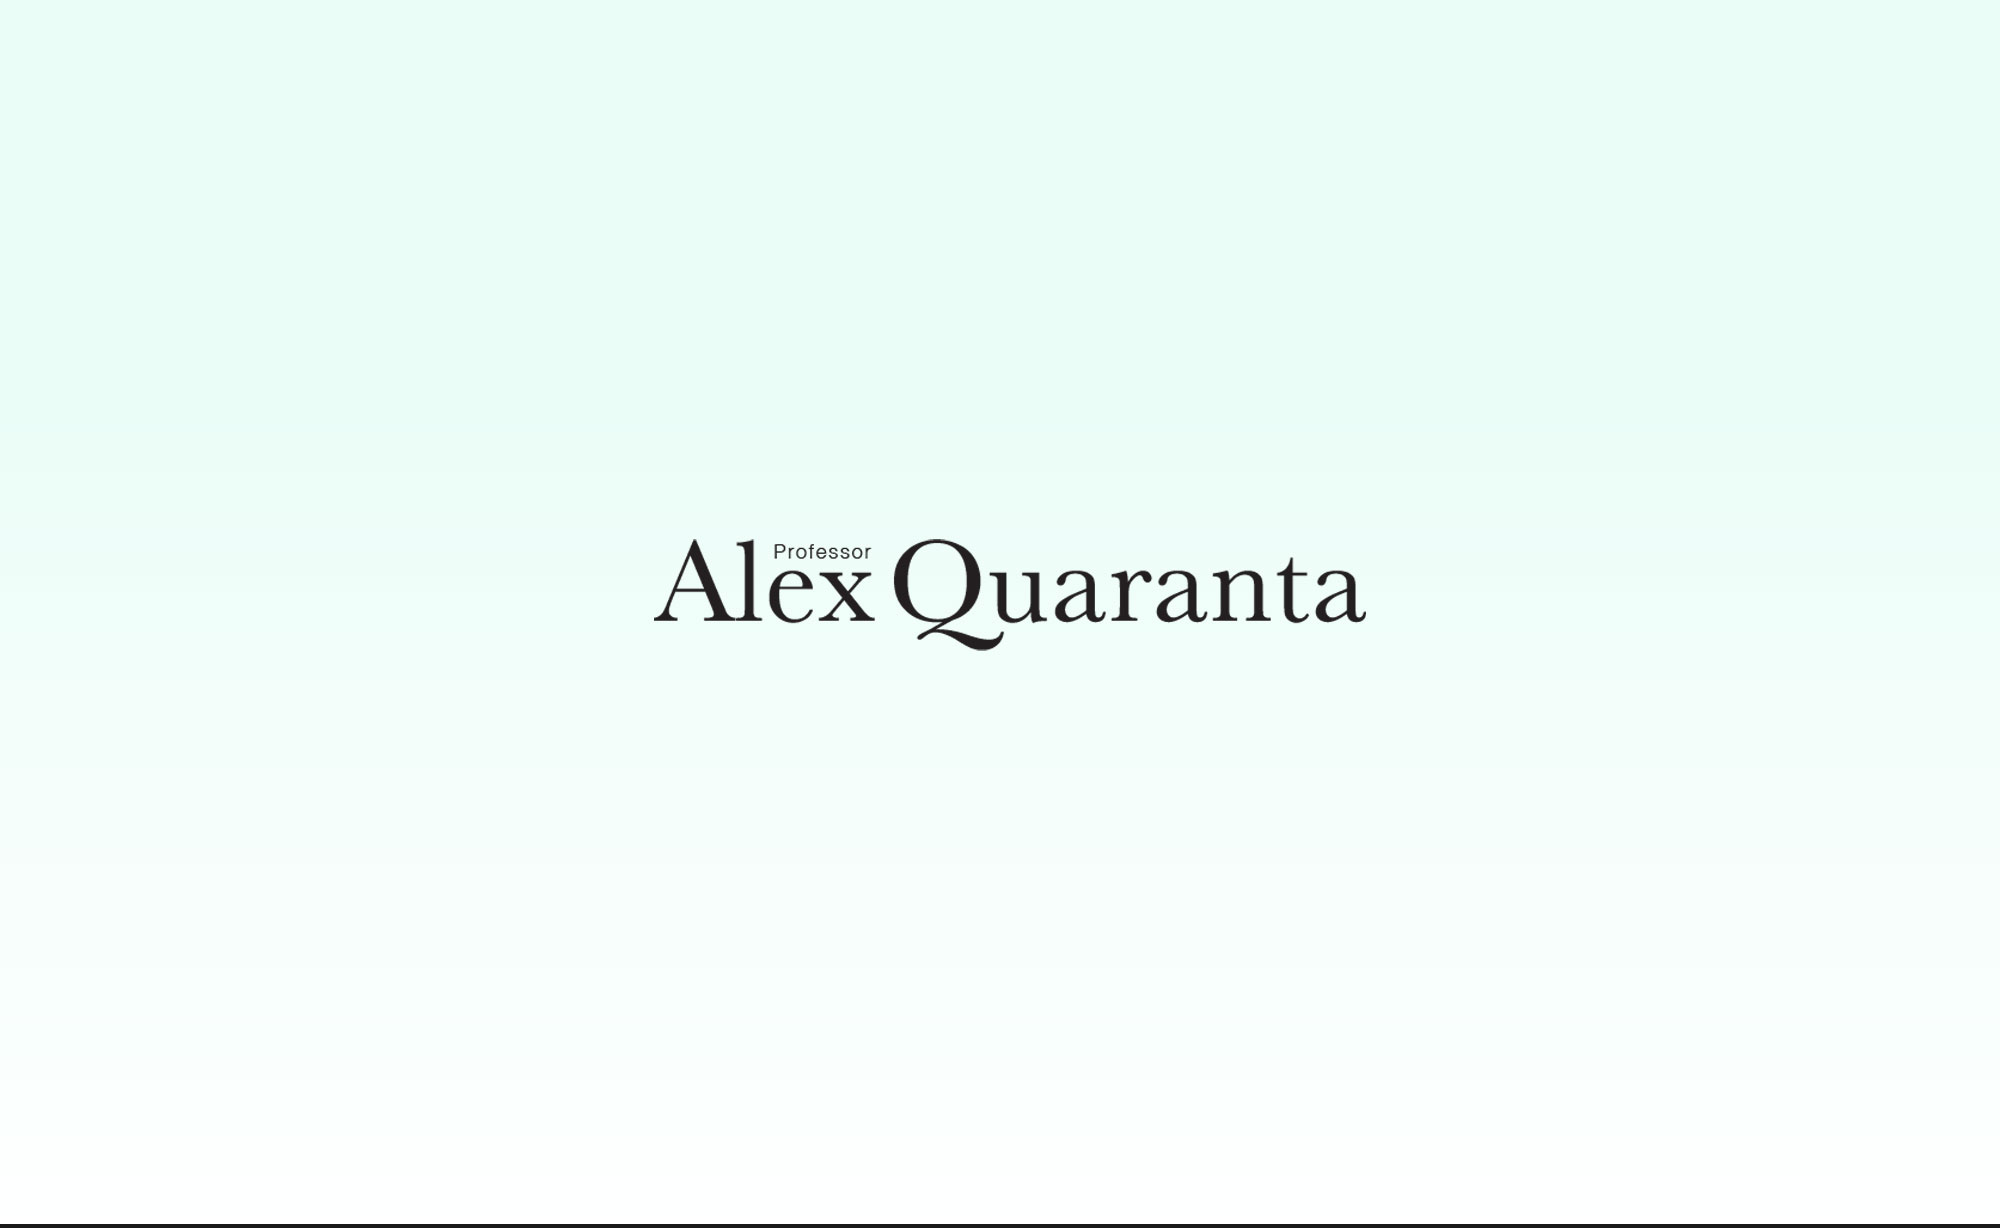 ©-Chris-Rae-Design-Professor-Alex-Alessandro-Quaranta-Brand-and-Identity-Logo-design-01.jpg